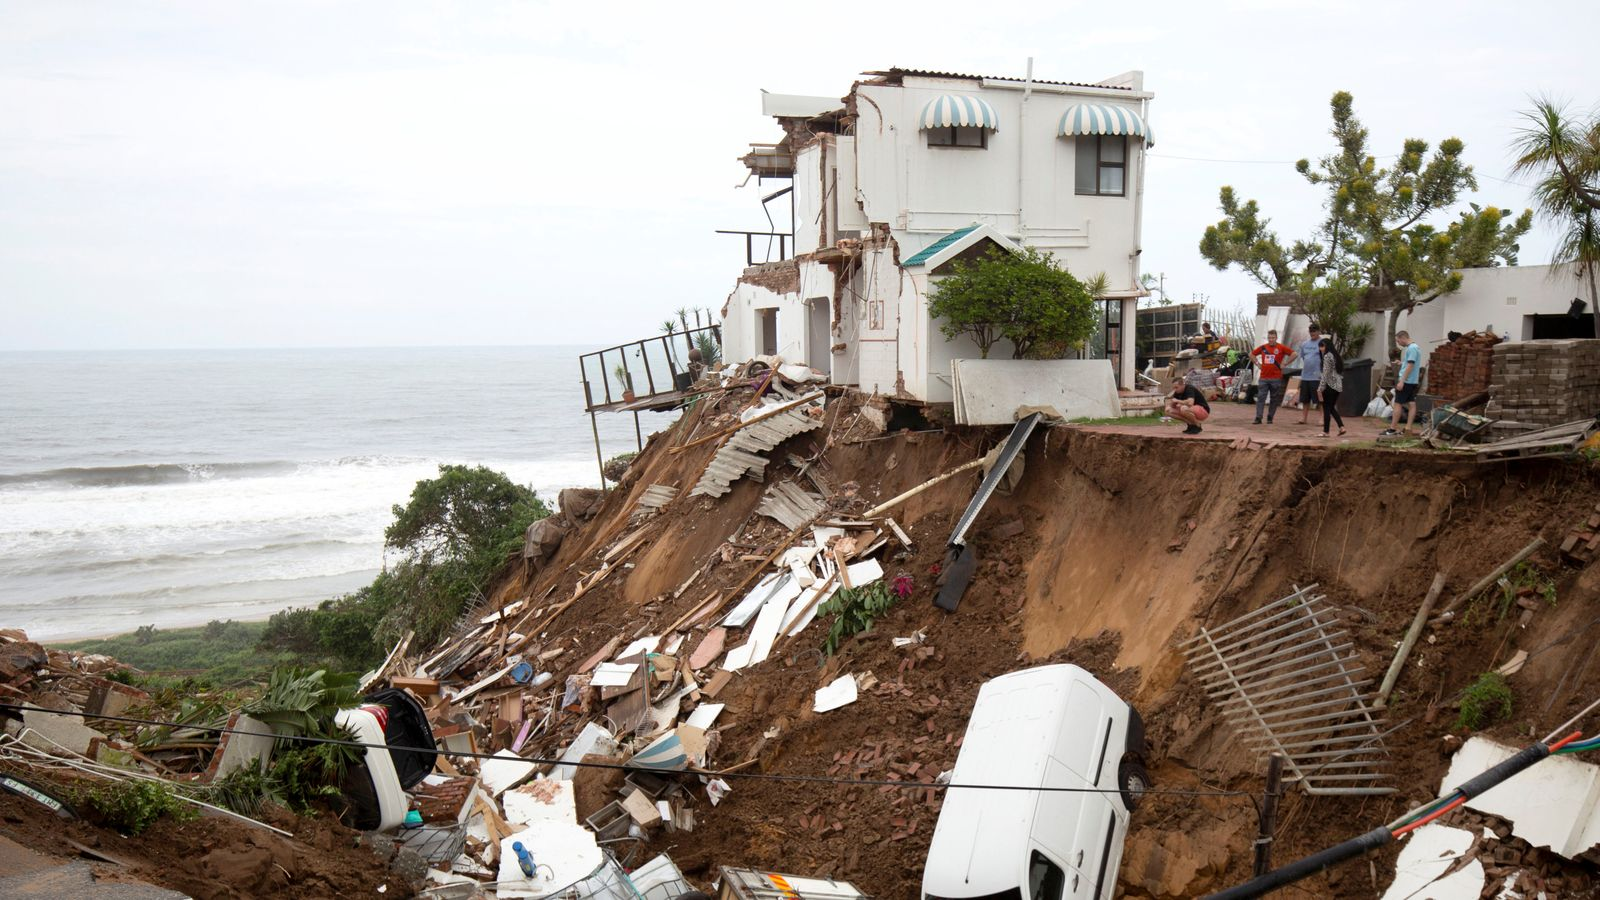 Flooding and mudslides kill at least 60 people in South Africa